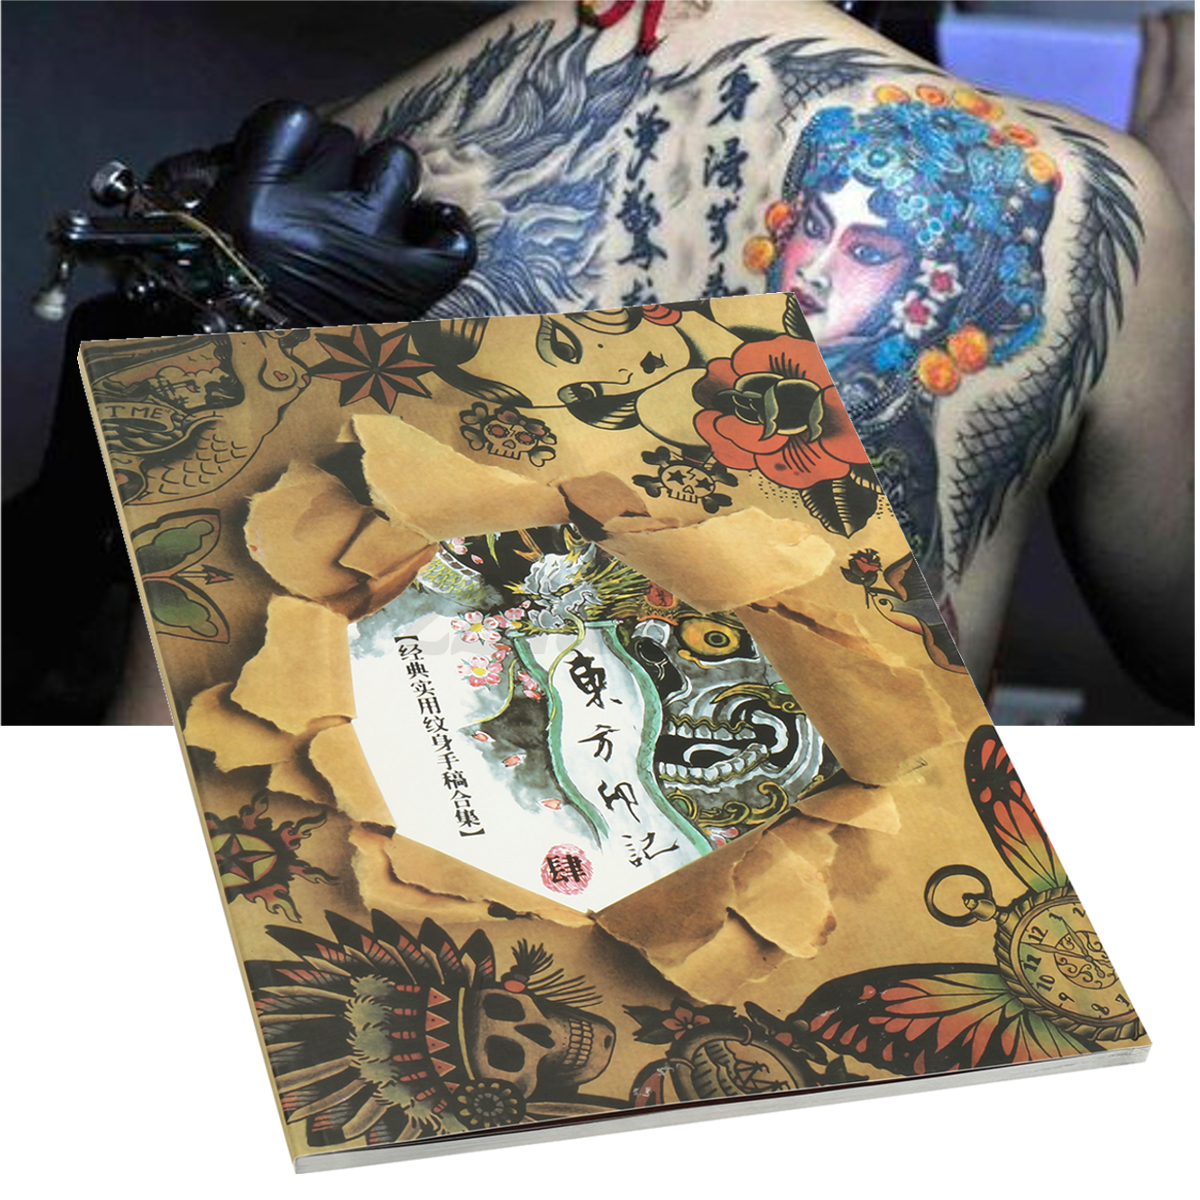 JOR 70 PagesTraditional Chinese Tattoo Manuscripts Flash Design Sketch Art Book - intl. Source · Detail Image